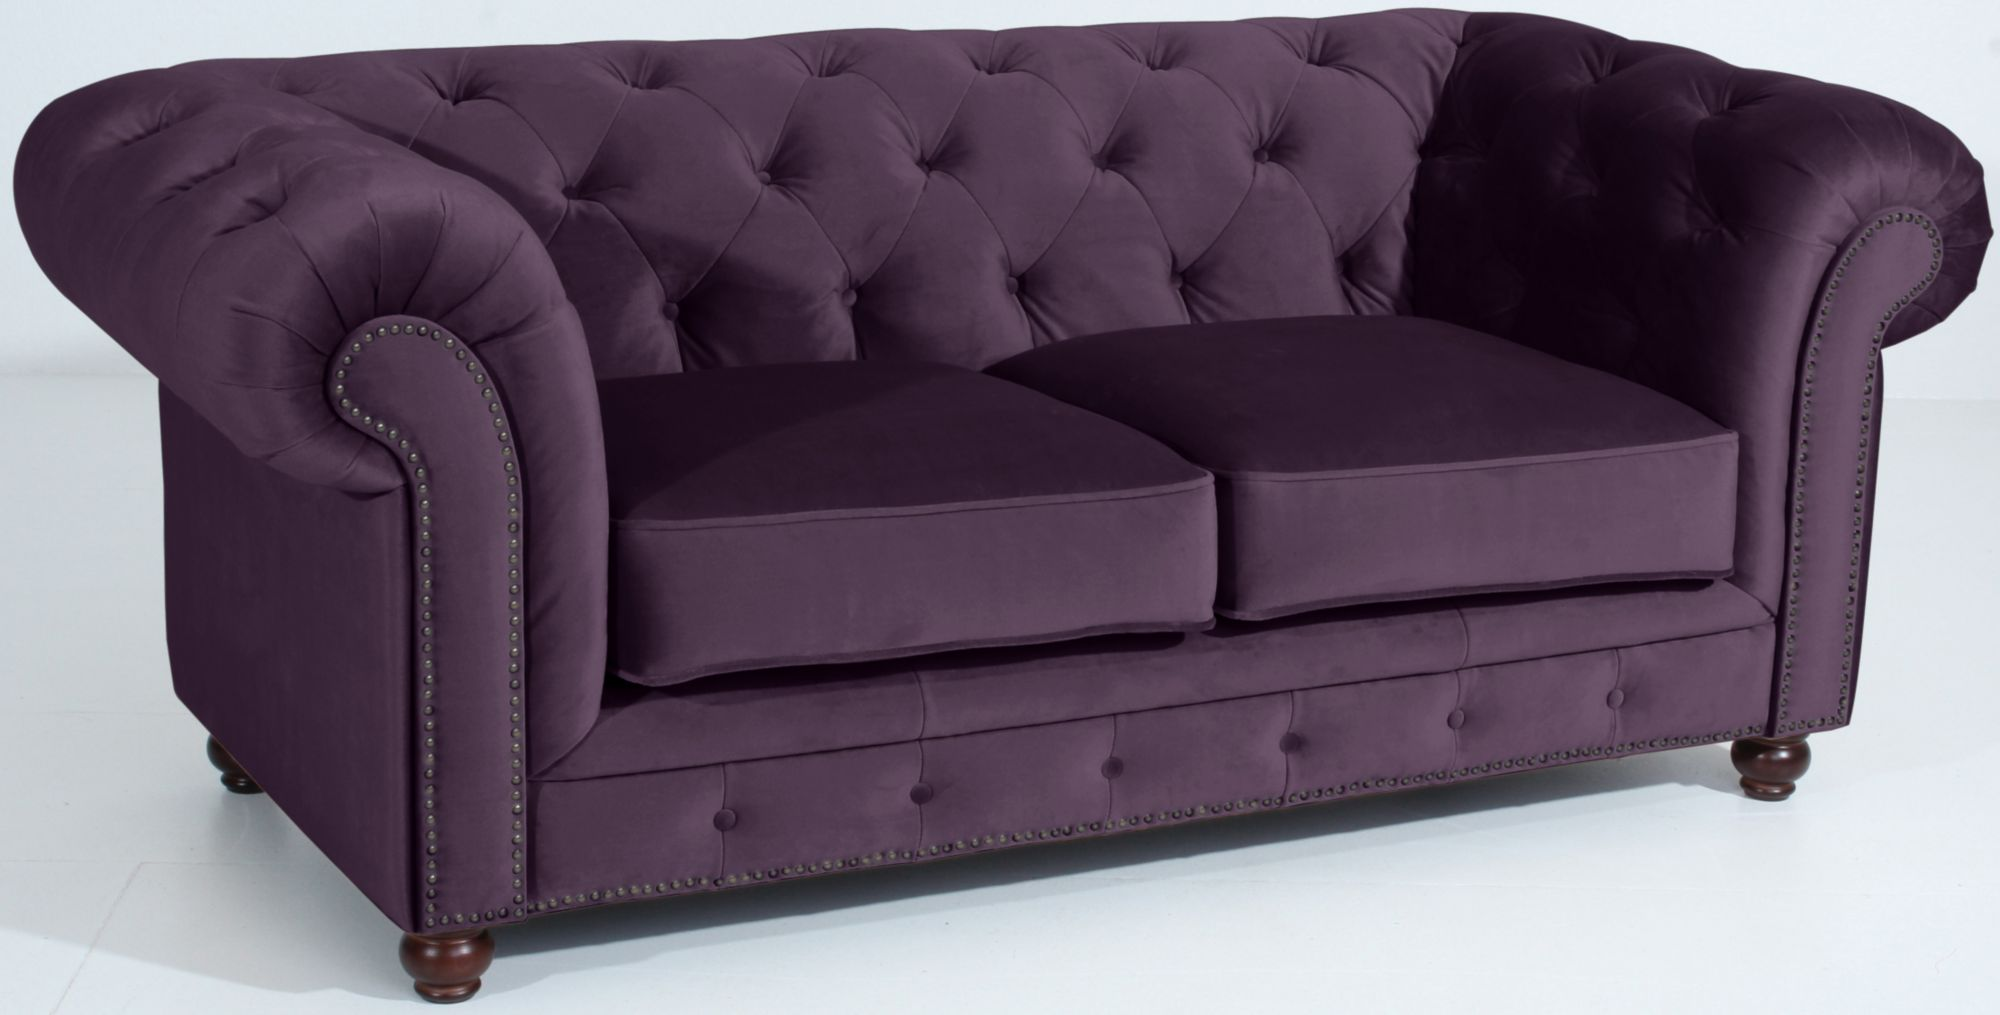 chesterfield sofa g nstig online kaufen beim schwab versand. Black Bedroom Furniture Sets. Home Design Ideas